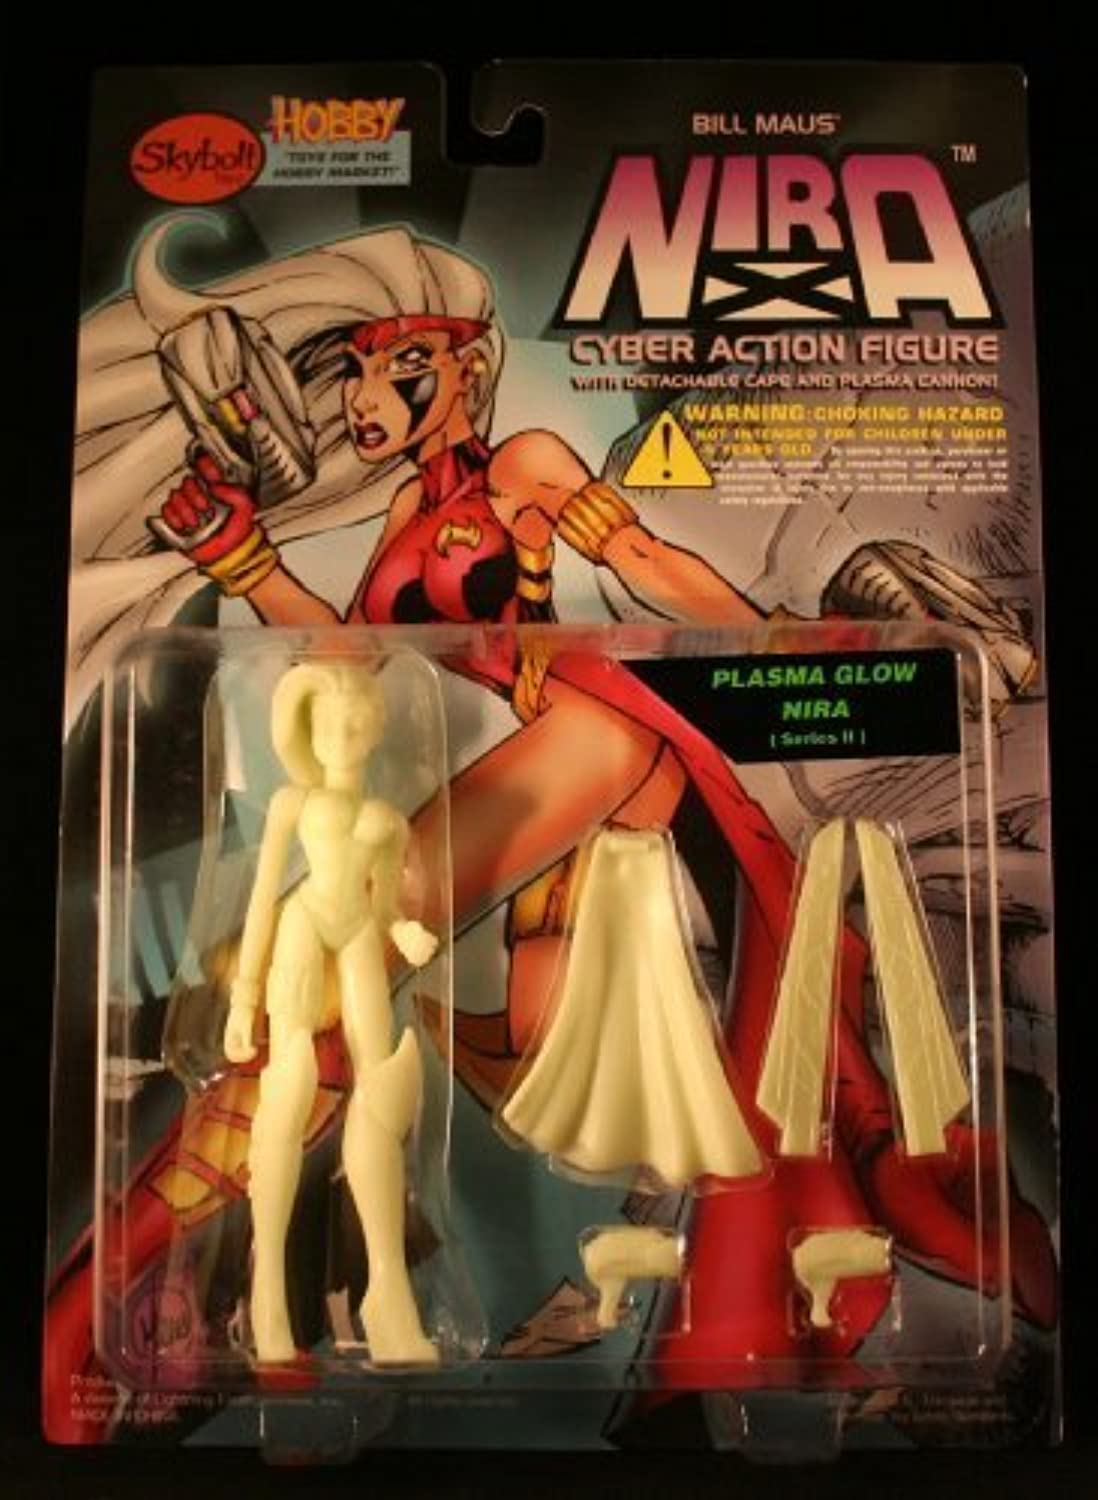 Plasma Glow Nira Cyber Action Figure with Detachable Cape and Plasma Cannon  Bill Maus' Nira by Skybolt Toys